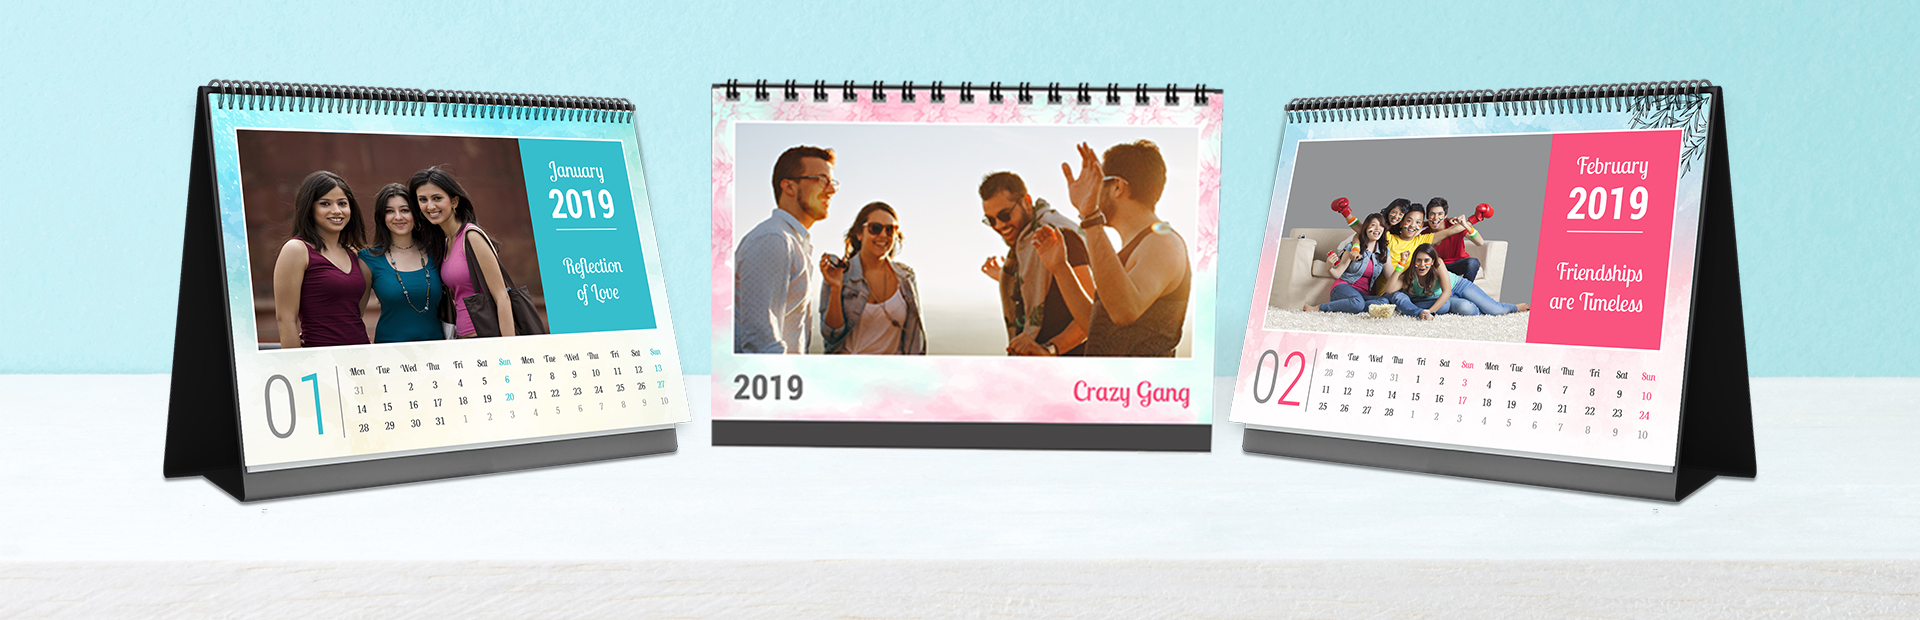 Friendship Bonds Photo Calendars Online